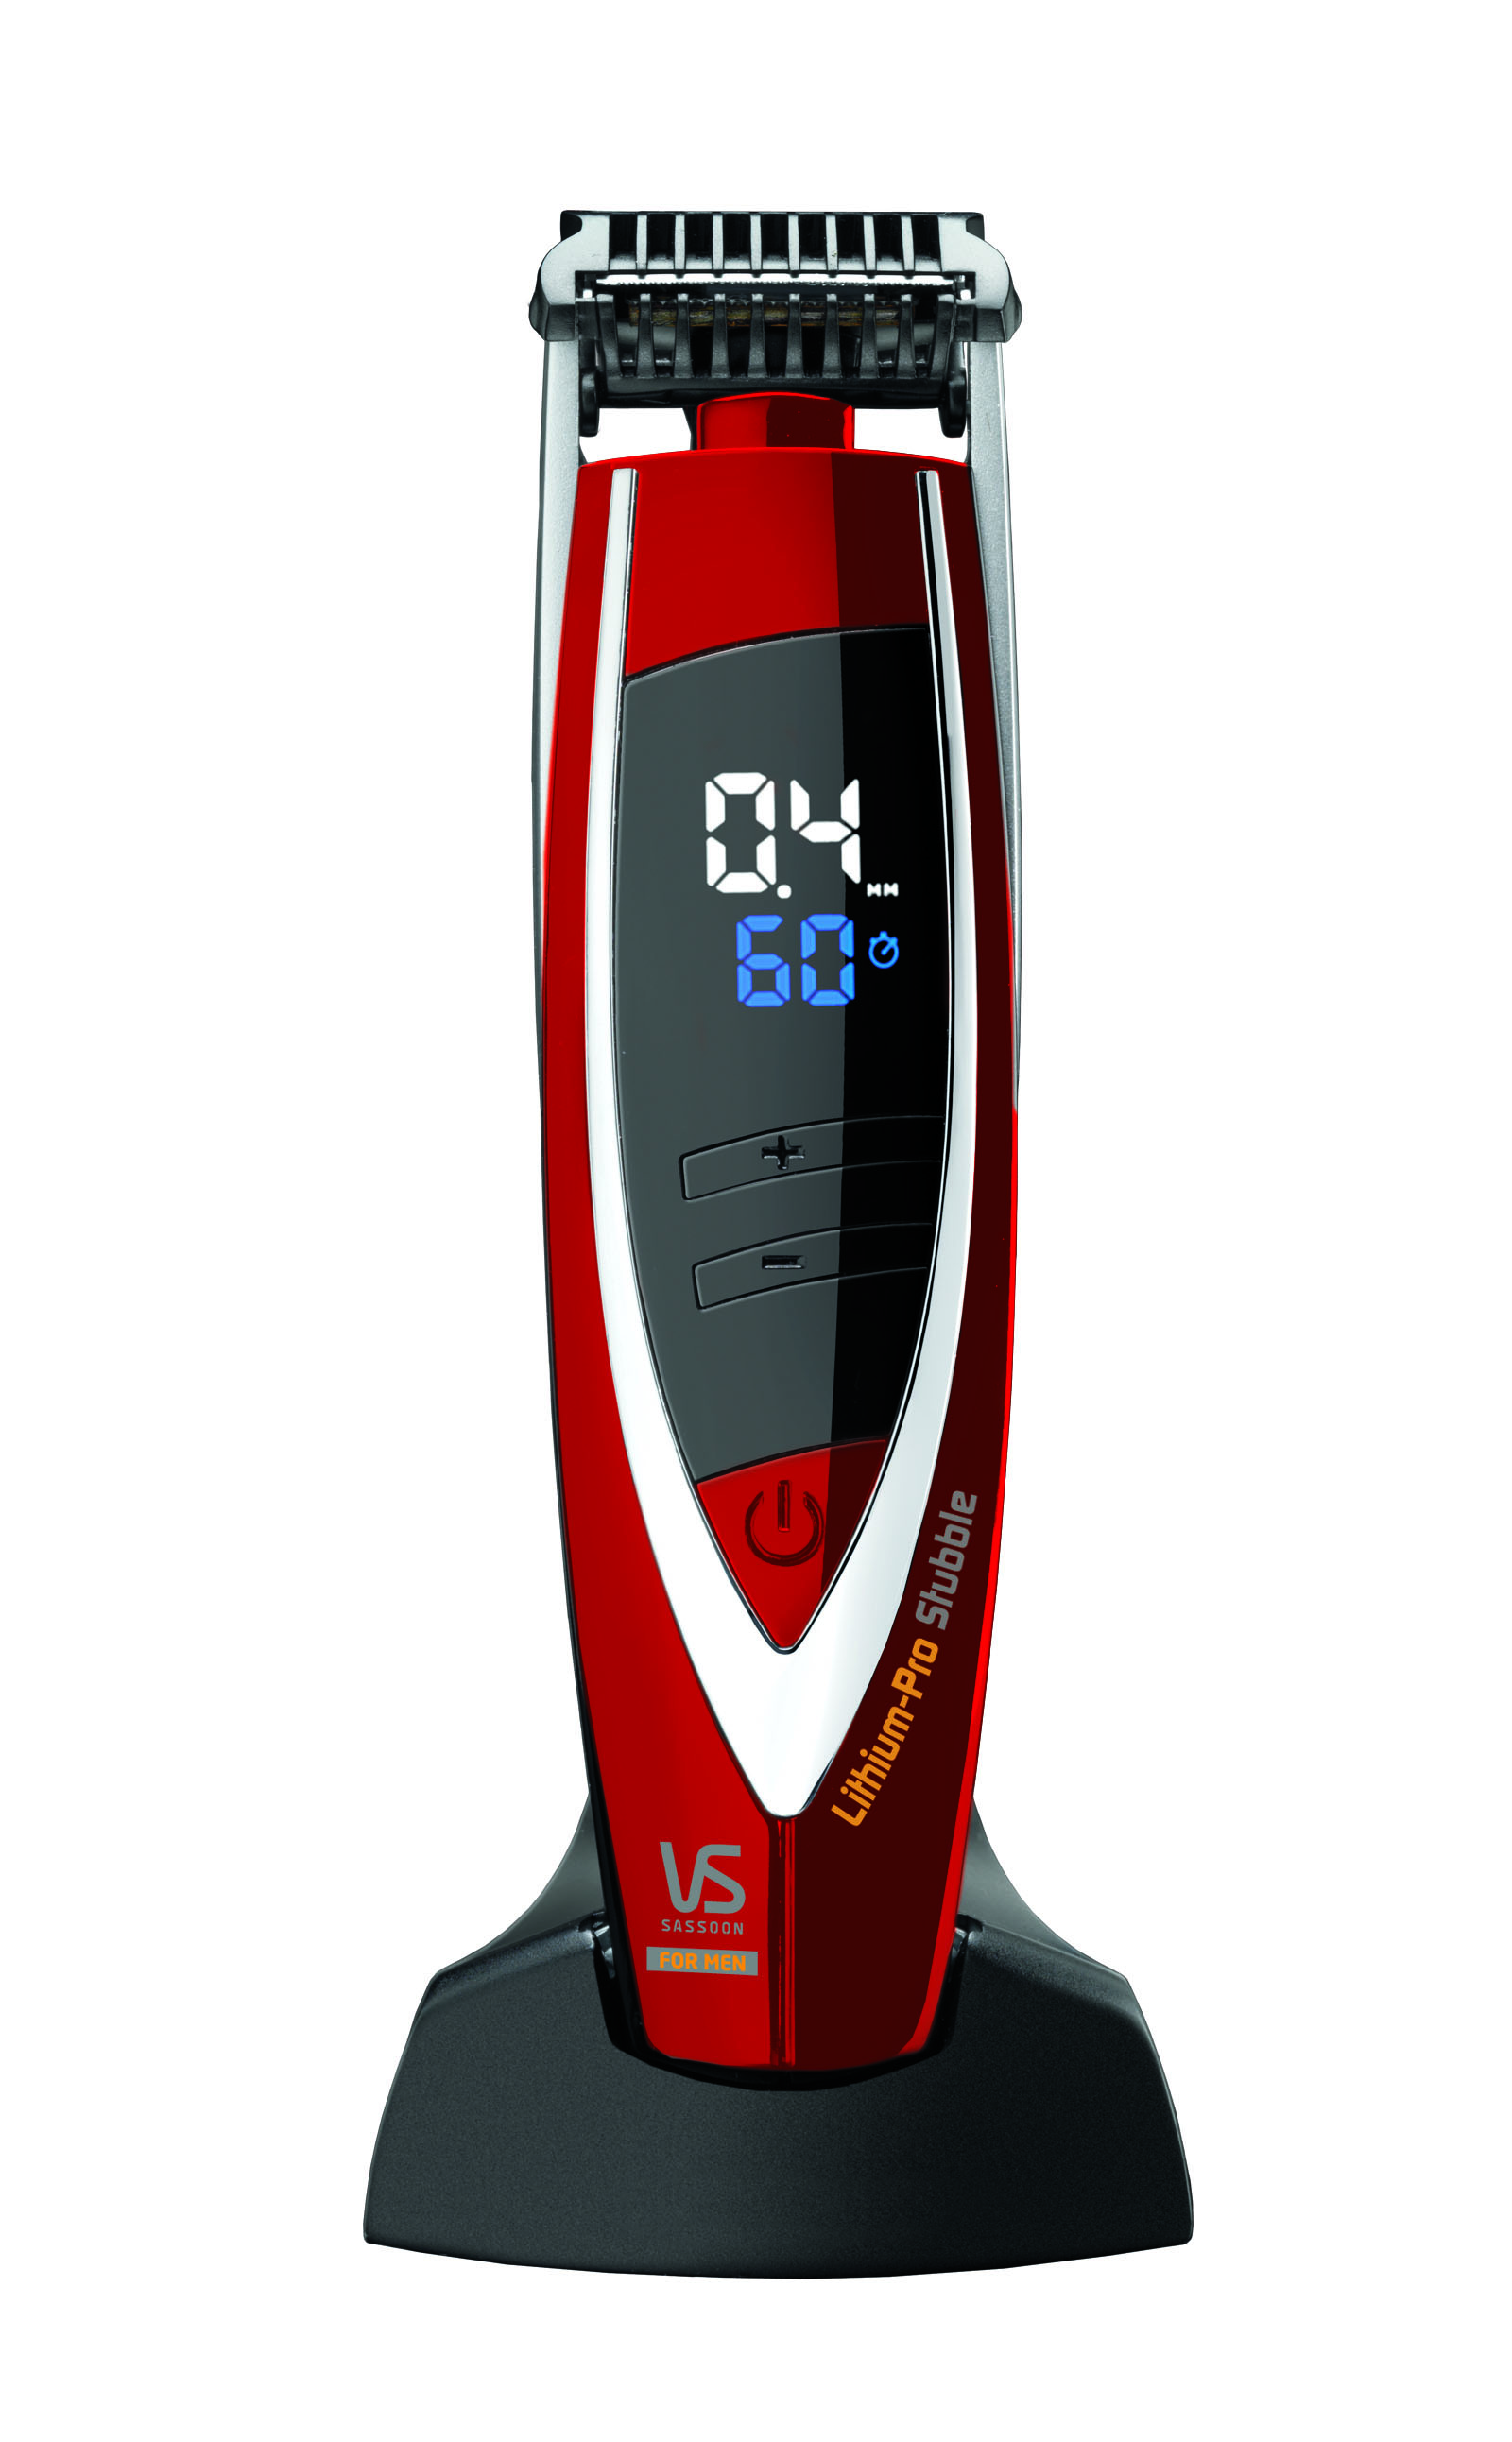 VS7898A-socle-red[1][1].jpg